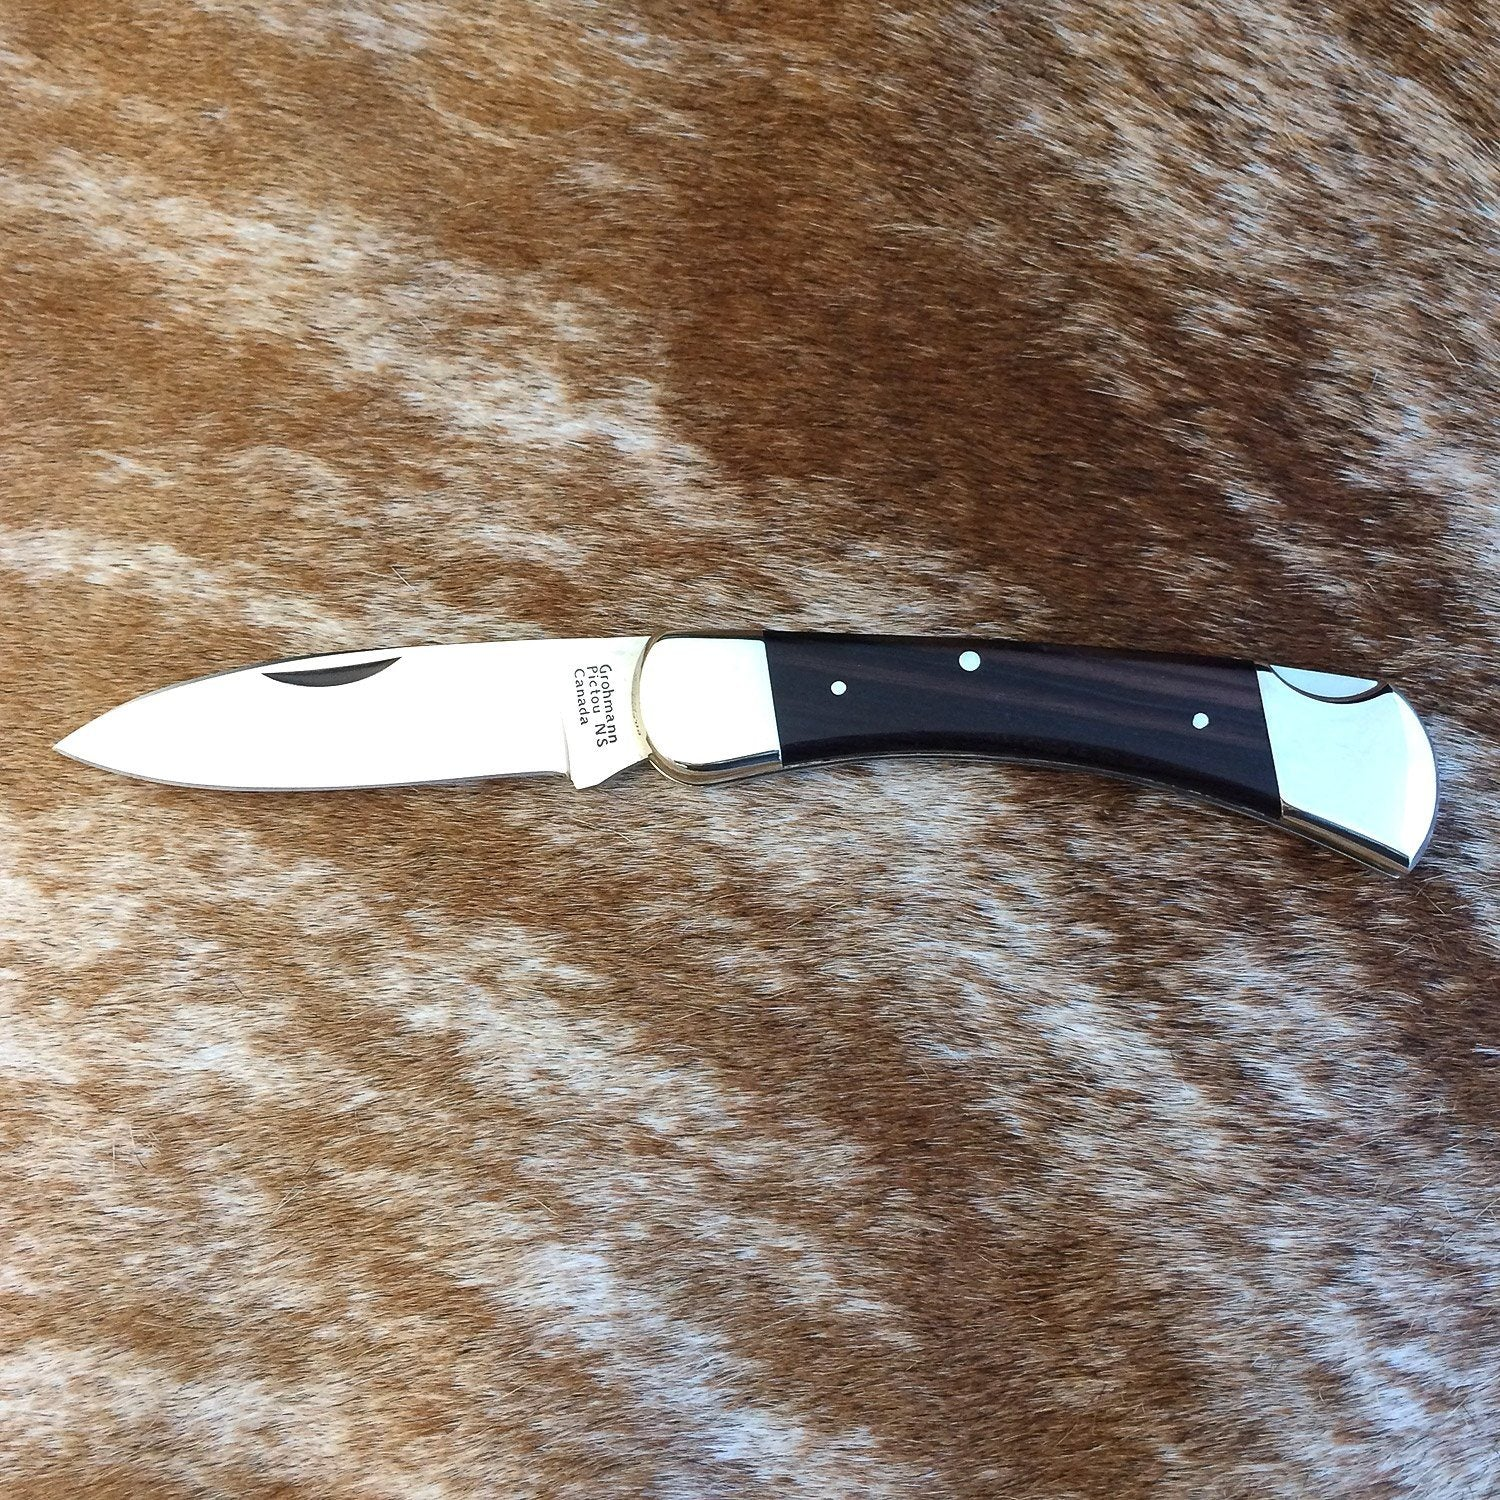 Grohmann Lockblade Hunter Nickel Silver with Rosewood Handle, 4.75""